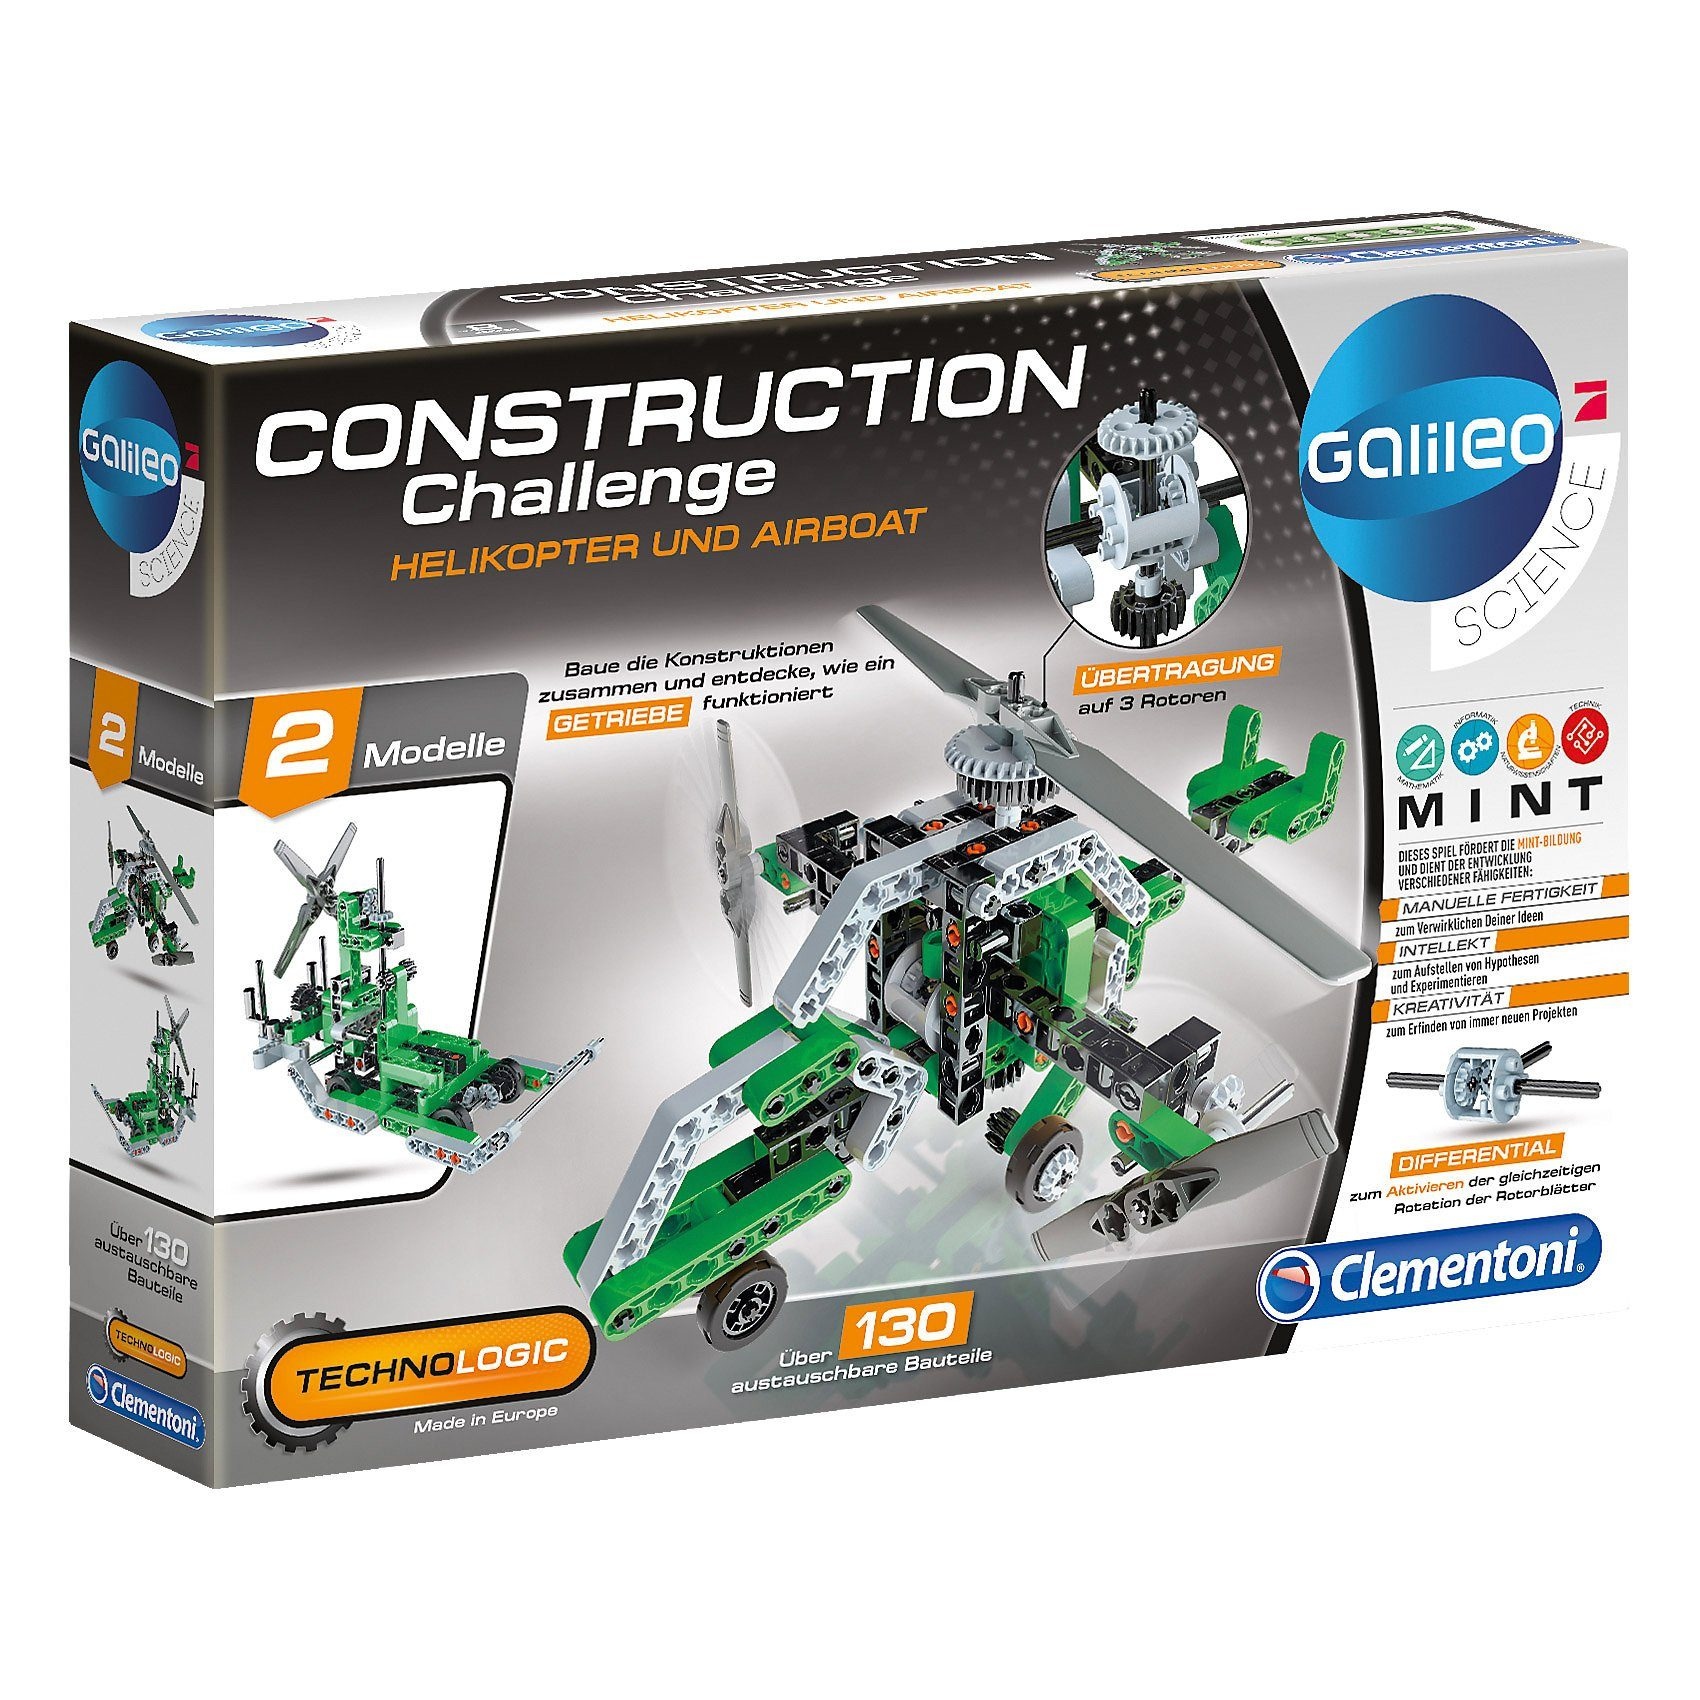 Clementoni® Galileo - Construction Challenge - Helikopter und Airboat